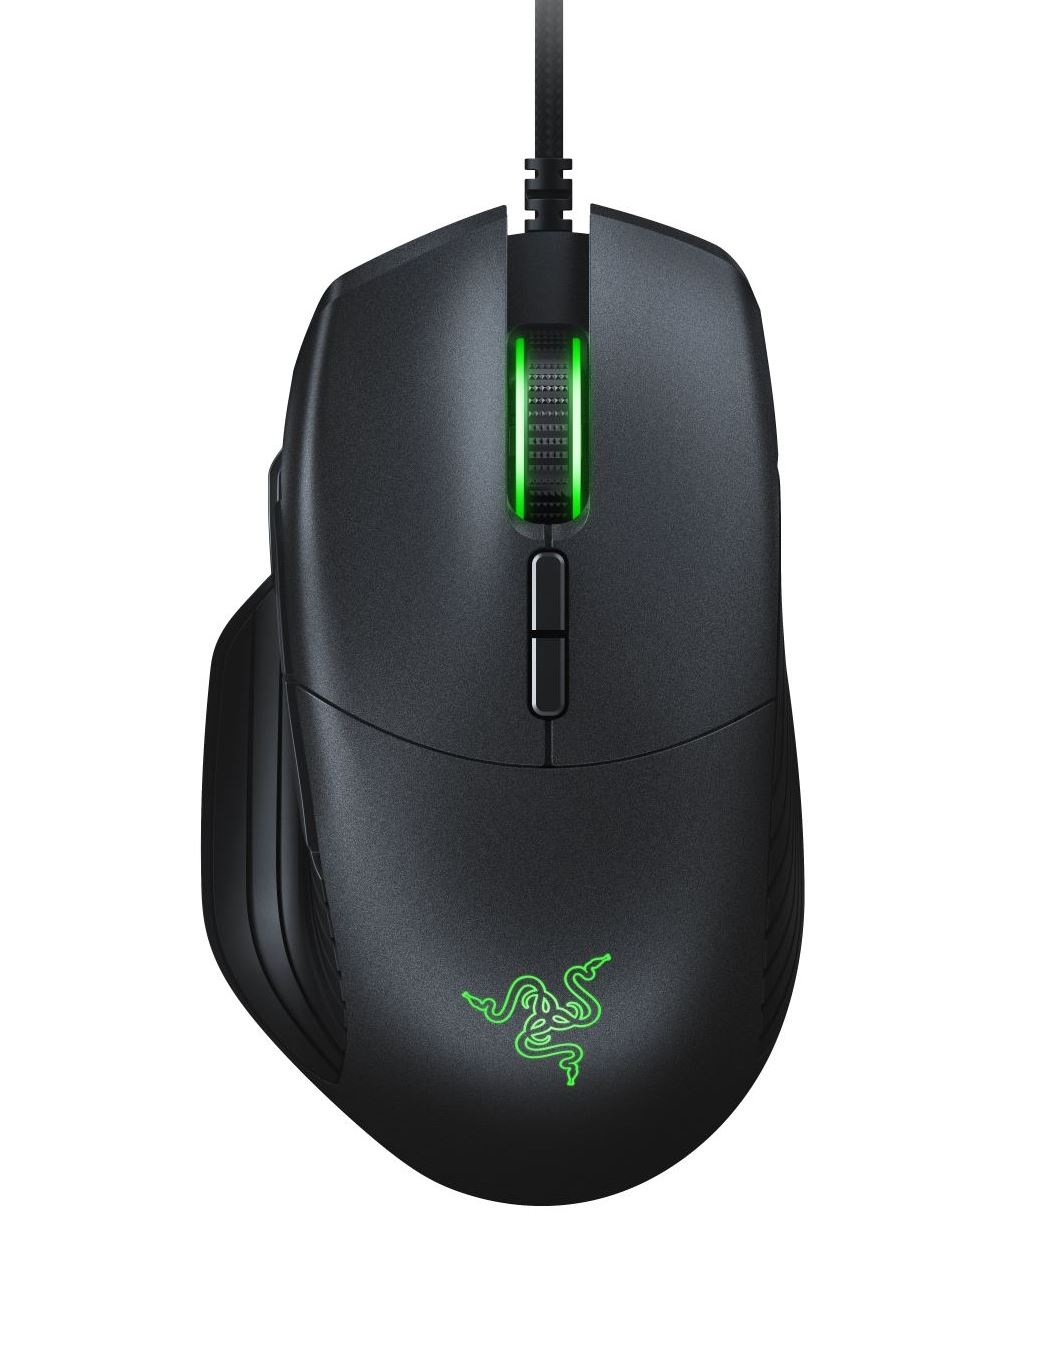 Razer Reveals Basilisk Mouse: Made for First Person Shooters